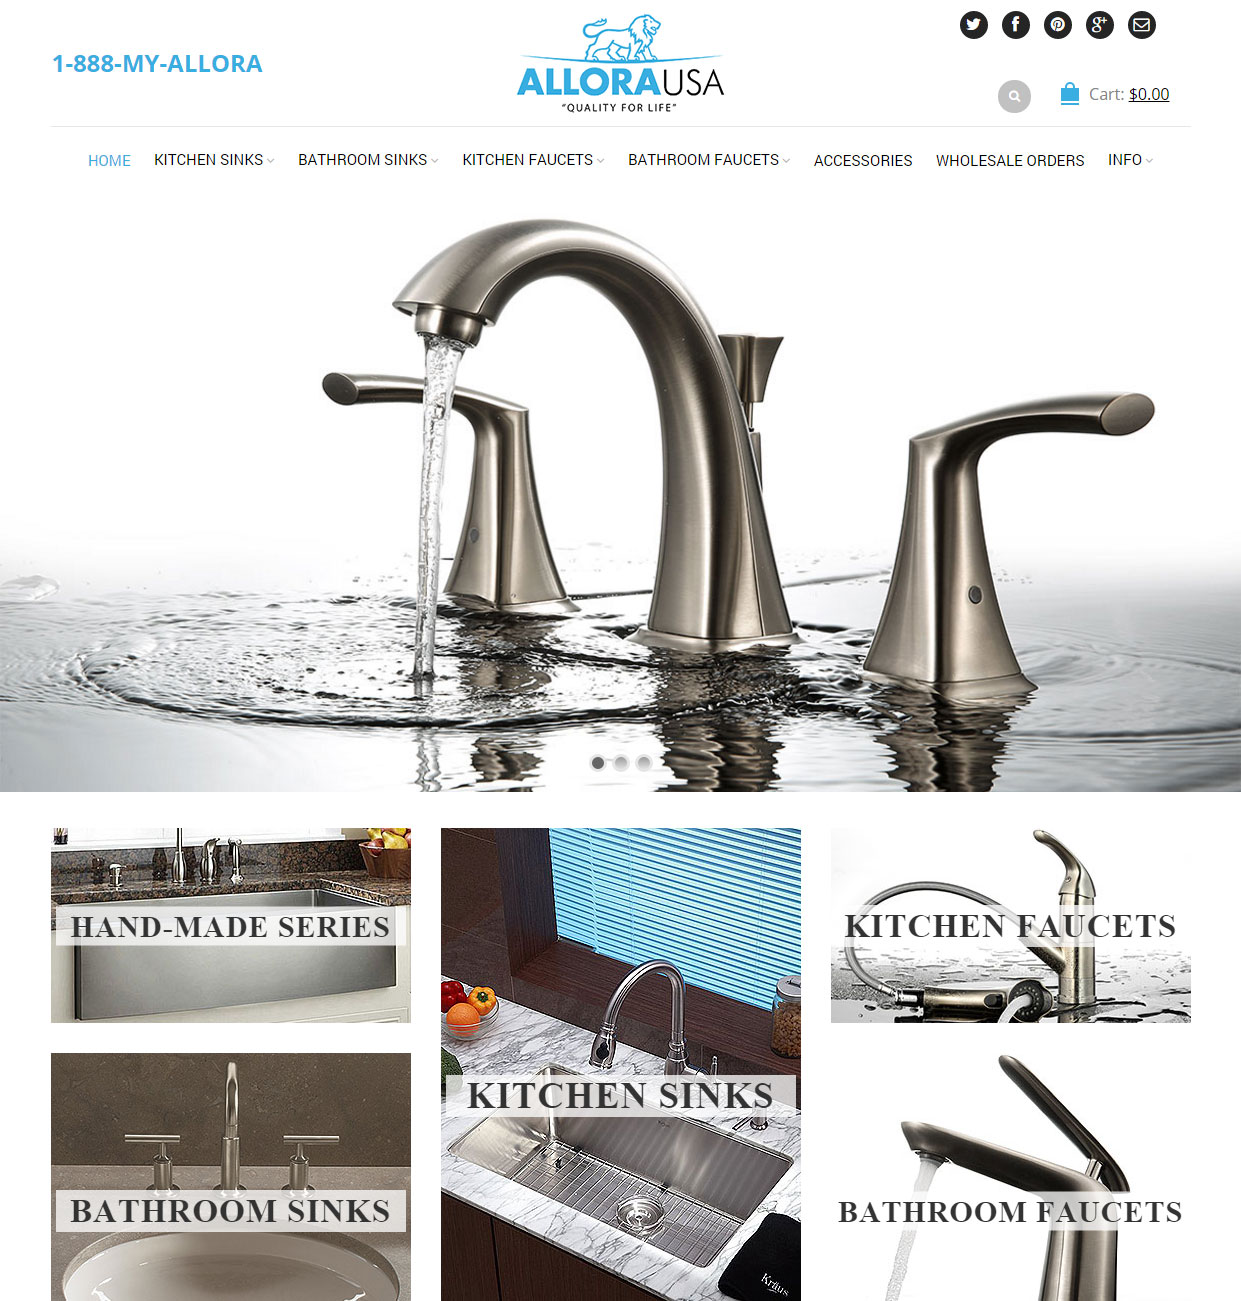 custom wordpress website for kitchen sink and faucet manufacturer